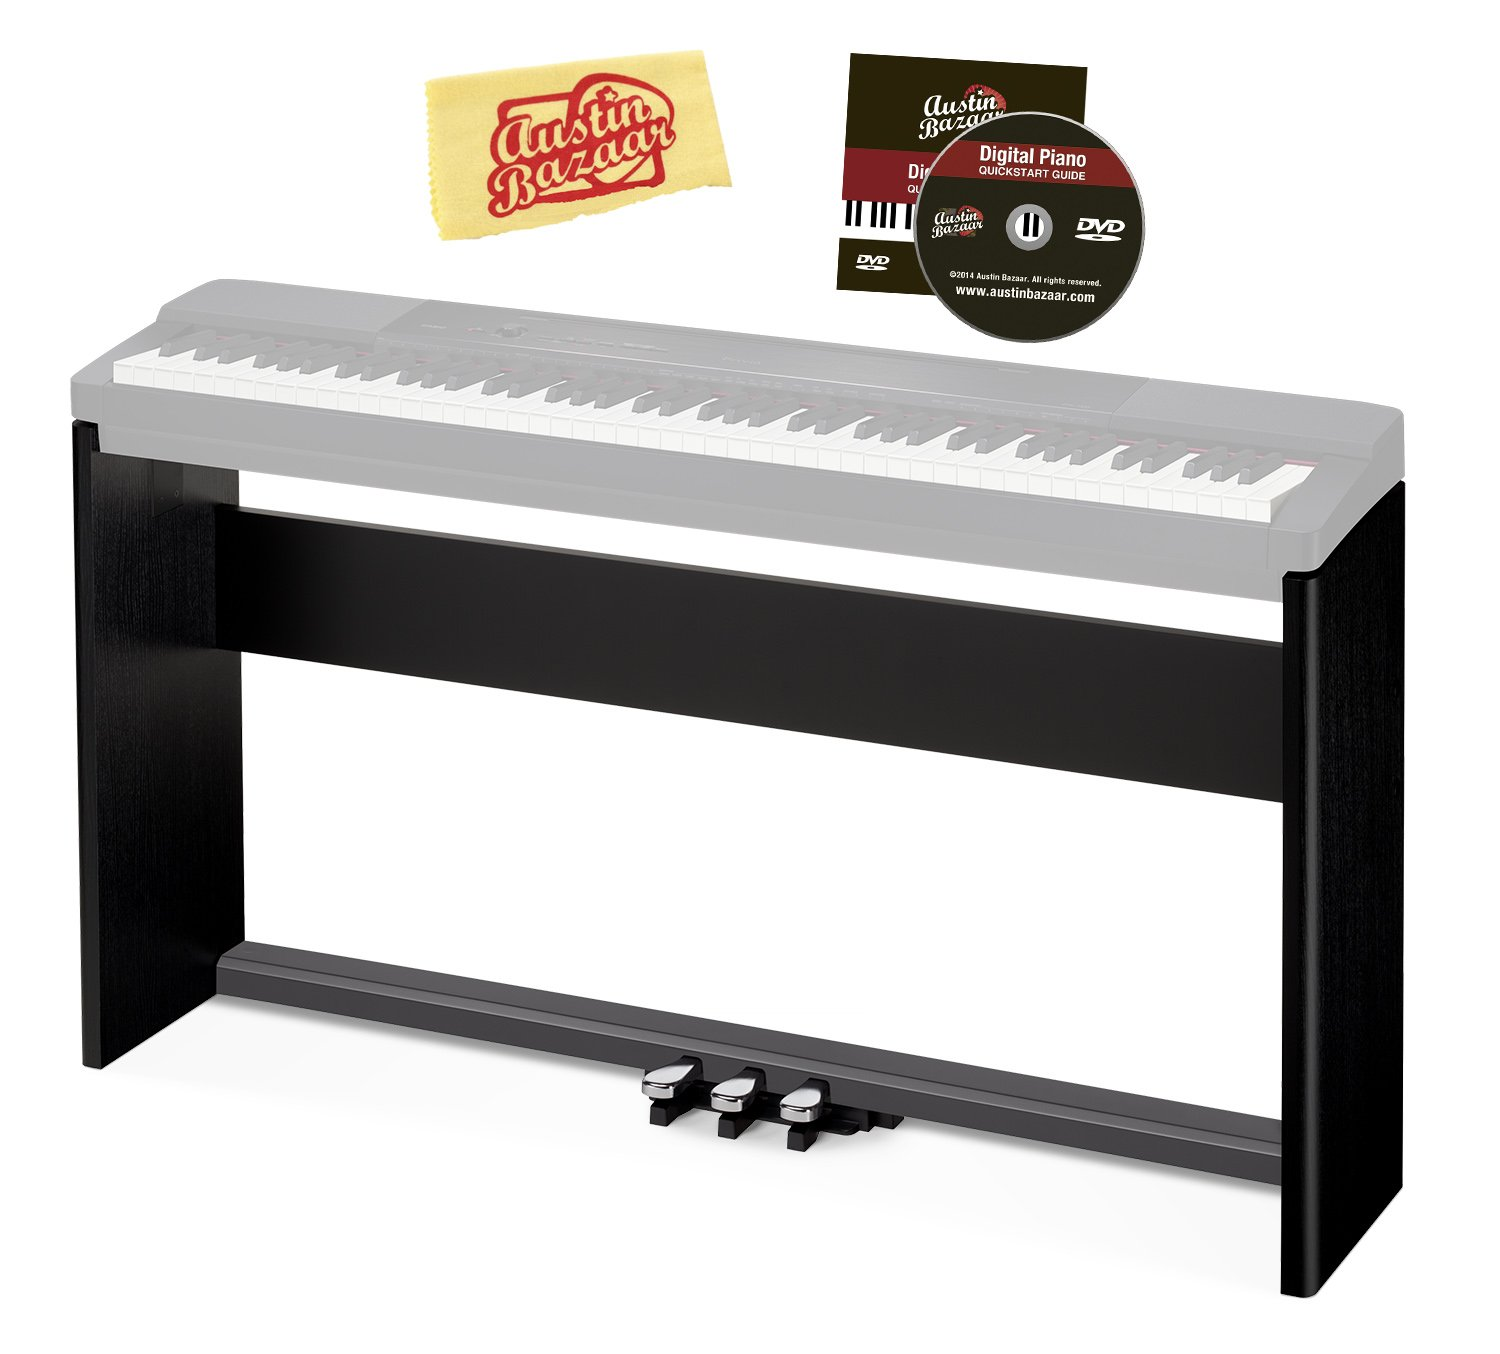 Casio CS-67 Keyboard Stand for PX-150/PX-160/PX-350/PX-360/PX-560 Bundle with Casio SP-33 Pedal System, Austin Bazaar Instructional DVD, and Polishing Cloth - Black by Casio (Image #1)